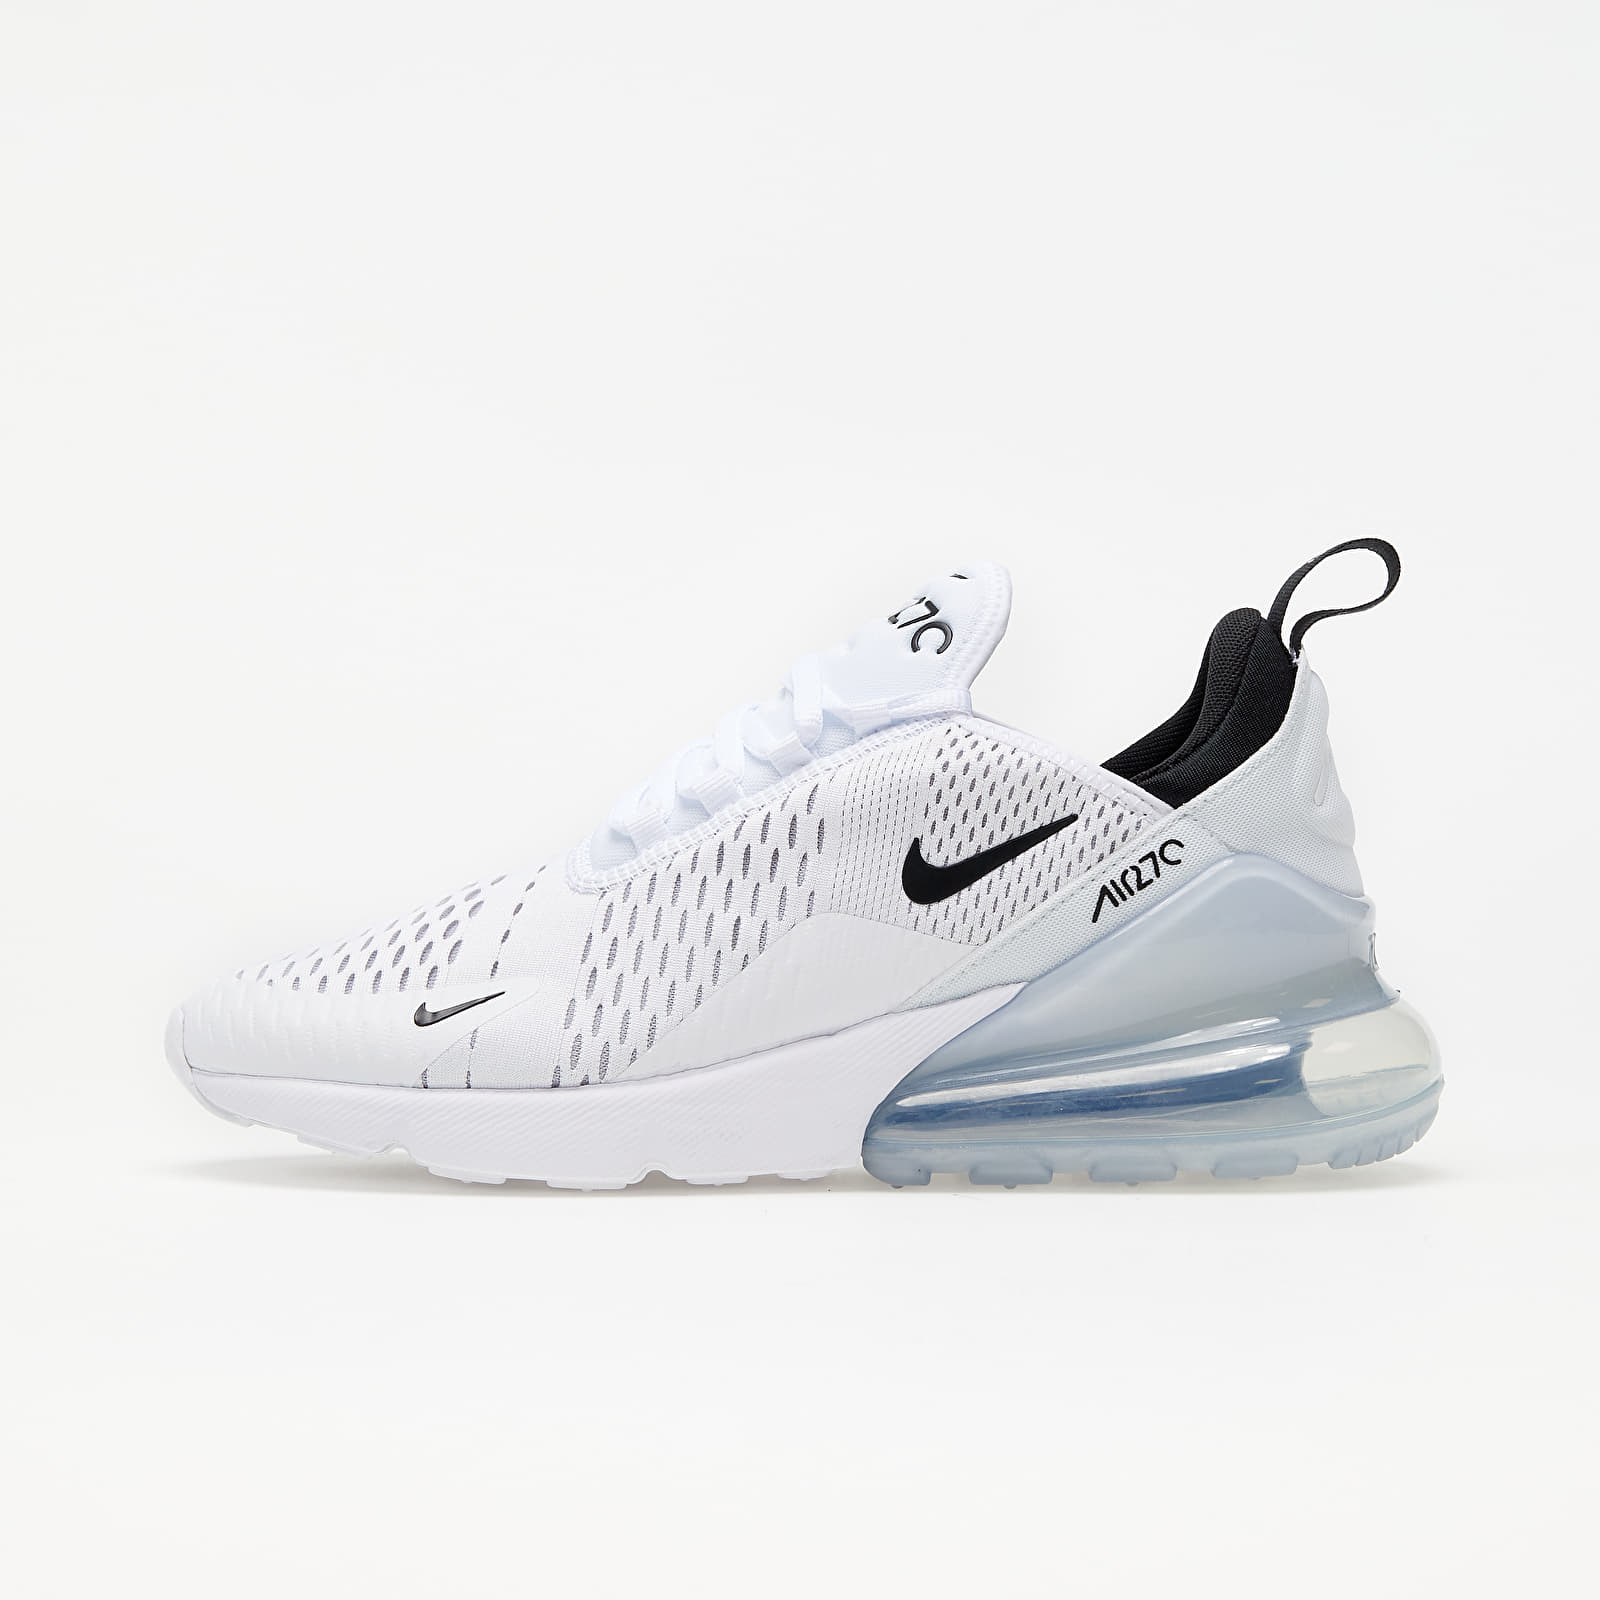 Nike Air Max 270 White/ Black-White EUR 41